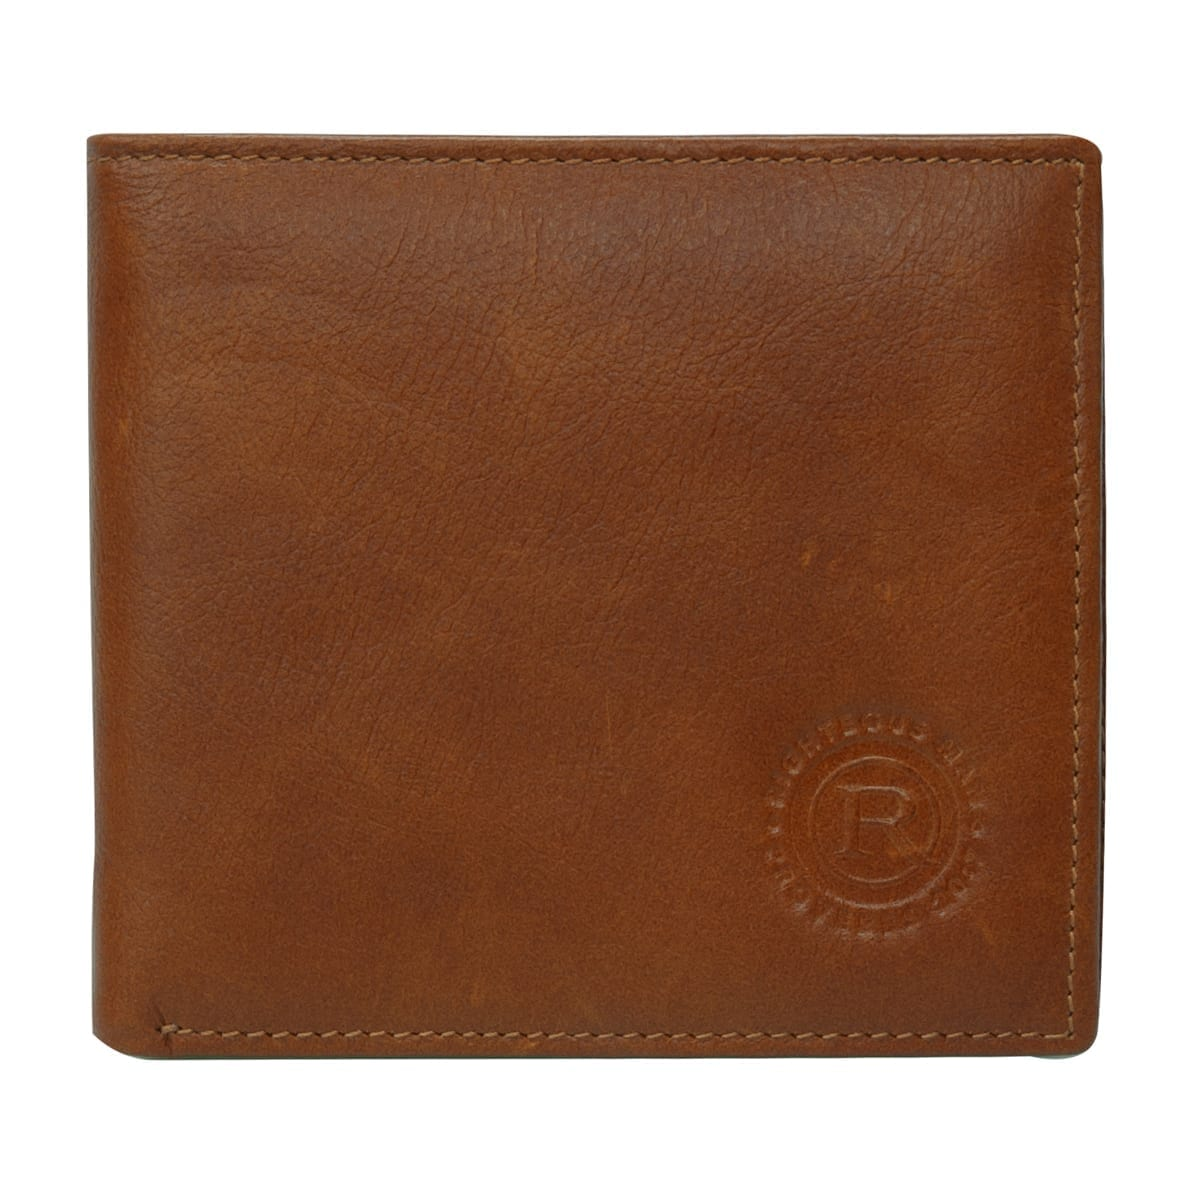 Righteous Man (Genuine Leather Wallet)